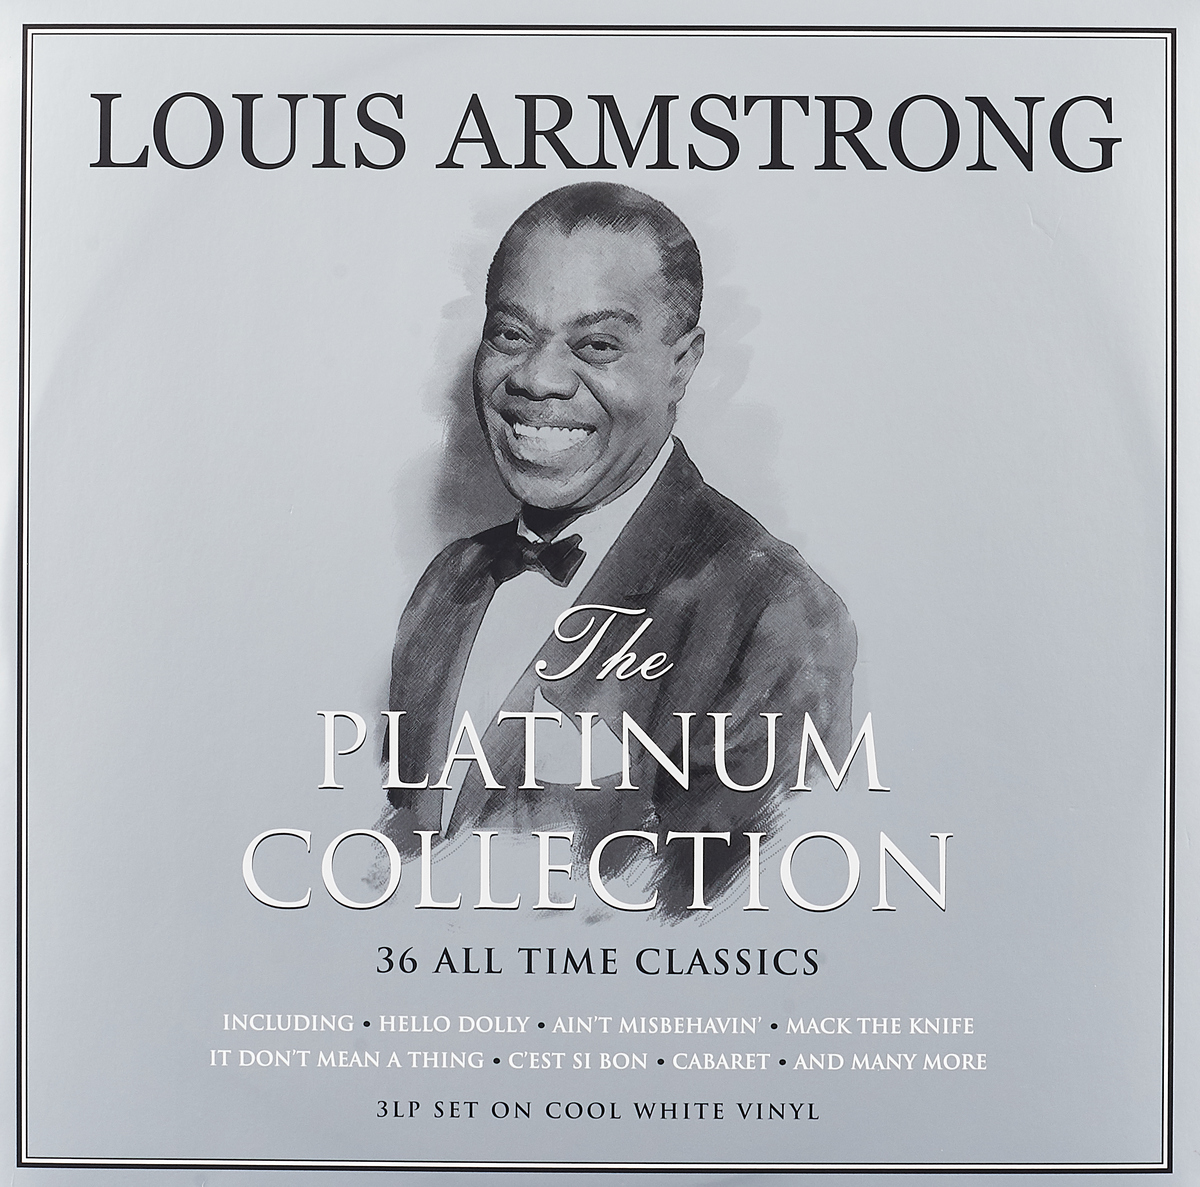 Луи Армстронг Louis Armstrong. The Platinum Collection (White Vinyl) (3 LP) луи армстронг оскар питерсон louis armstrong meets oscar peterson